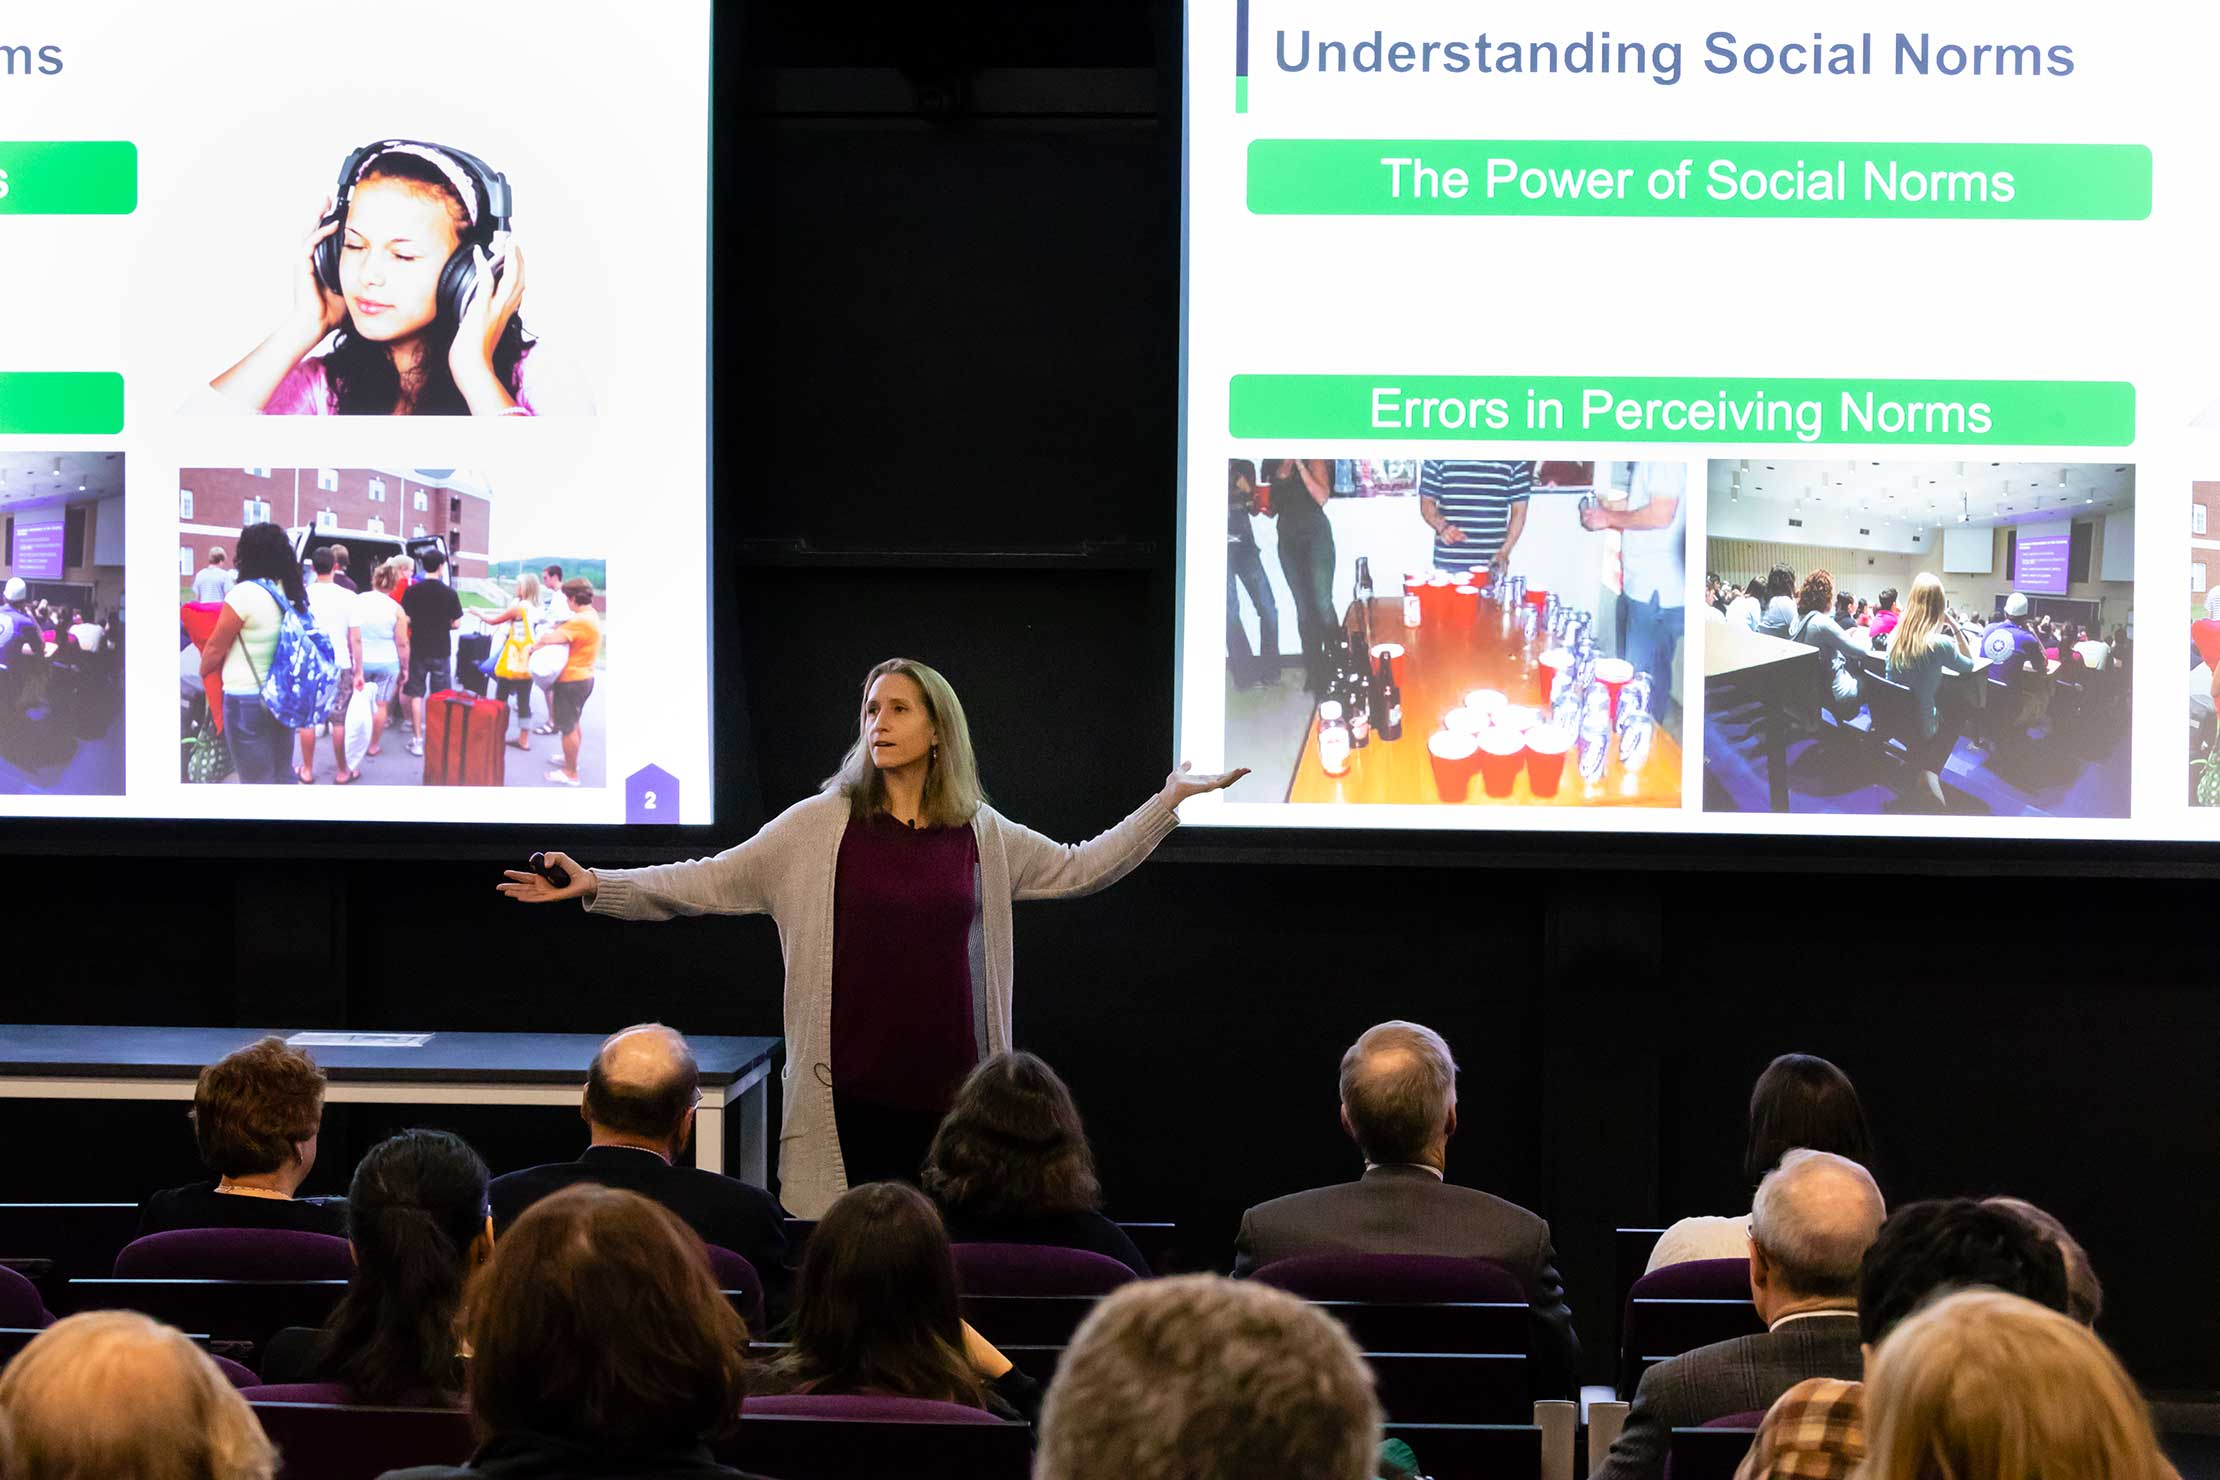 "The Lipton Lecture Hall Dedication in the new Science center featured a talk by Psychology Professor Catherine Sanderson: ""They Aren't as Thin or as Happy as You Think They Are: Exploring Causes and Consequences of Misperceiving Social Norms at Amherst."""